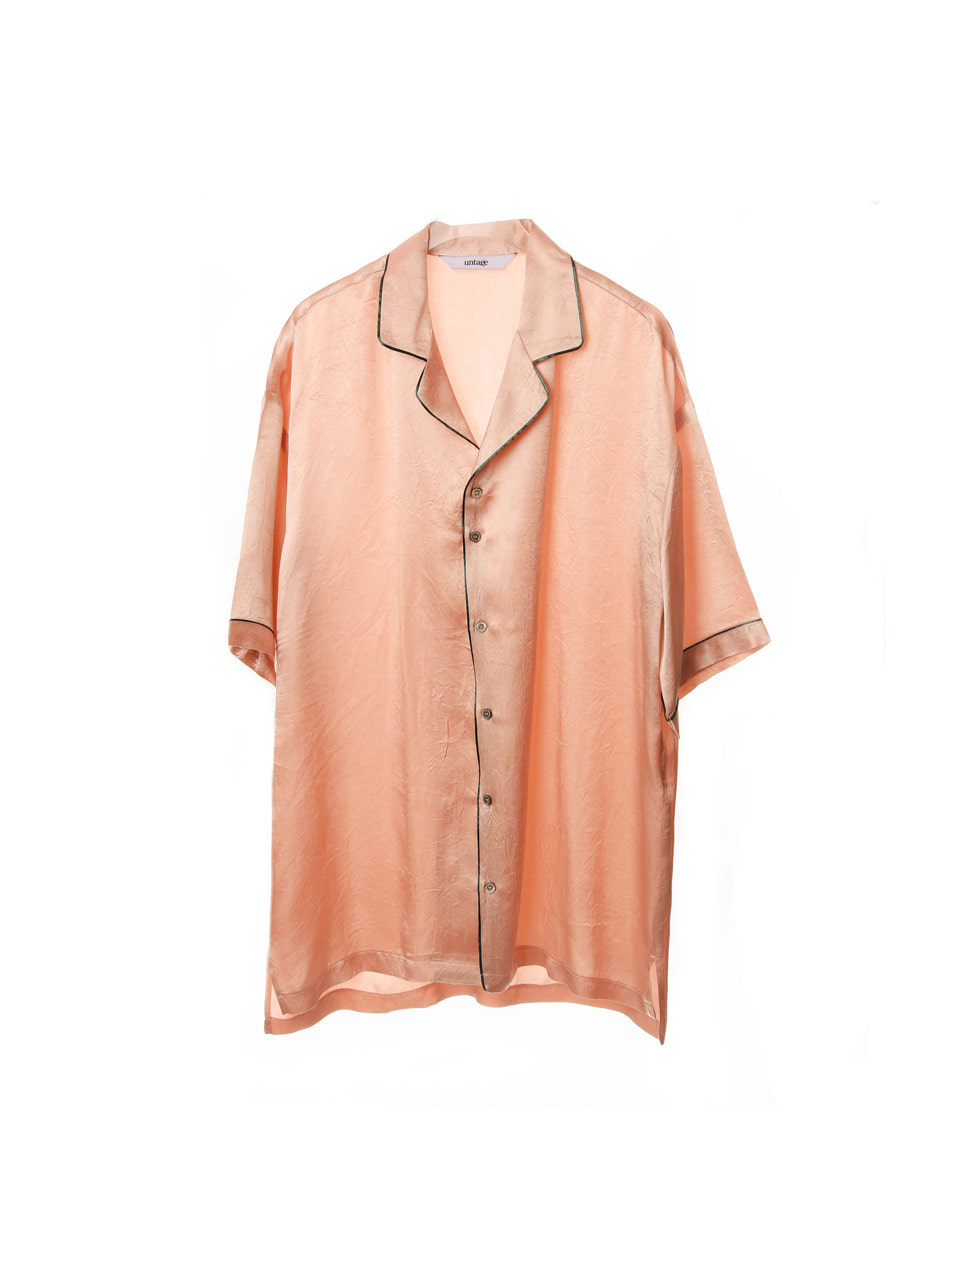 pink artificial silk over-fit shirts